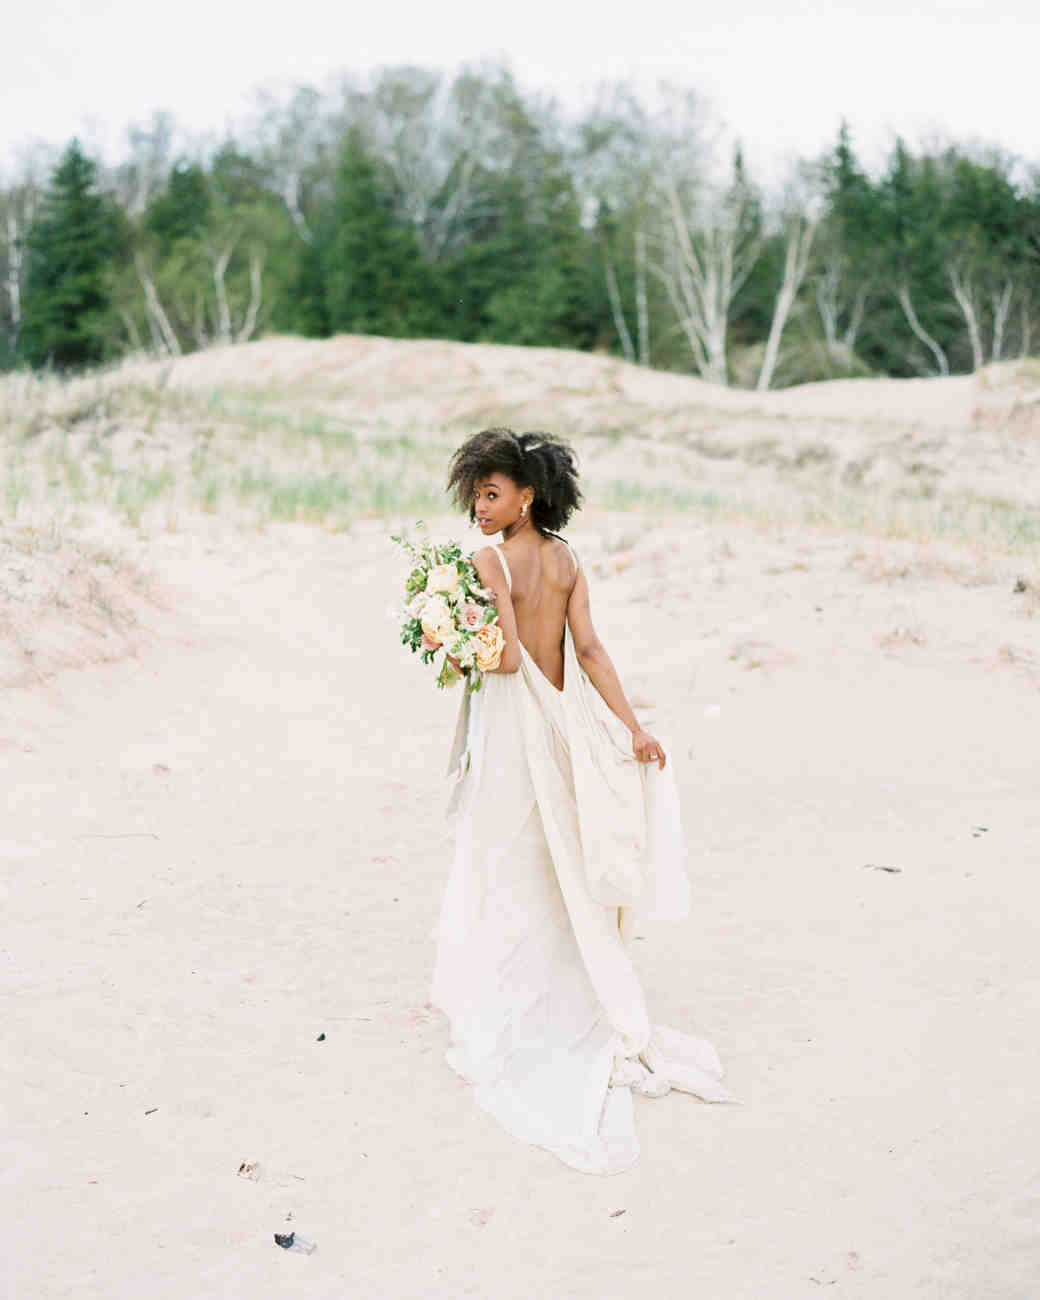 Honeymoon Clothes For Bride: 27 Stunning Beach Wedding Dresses